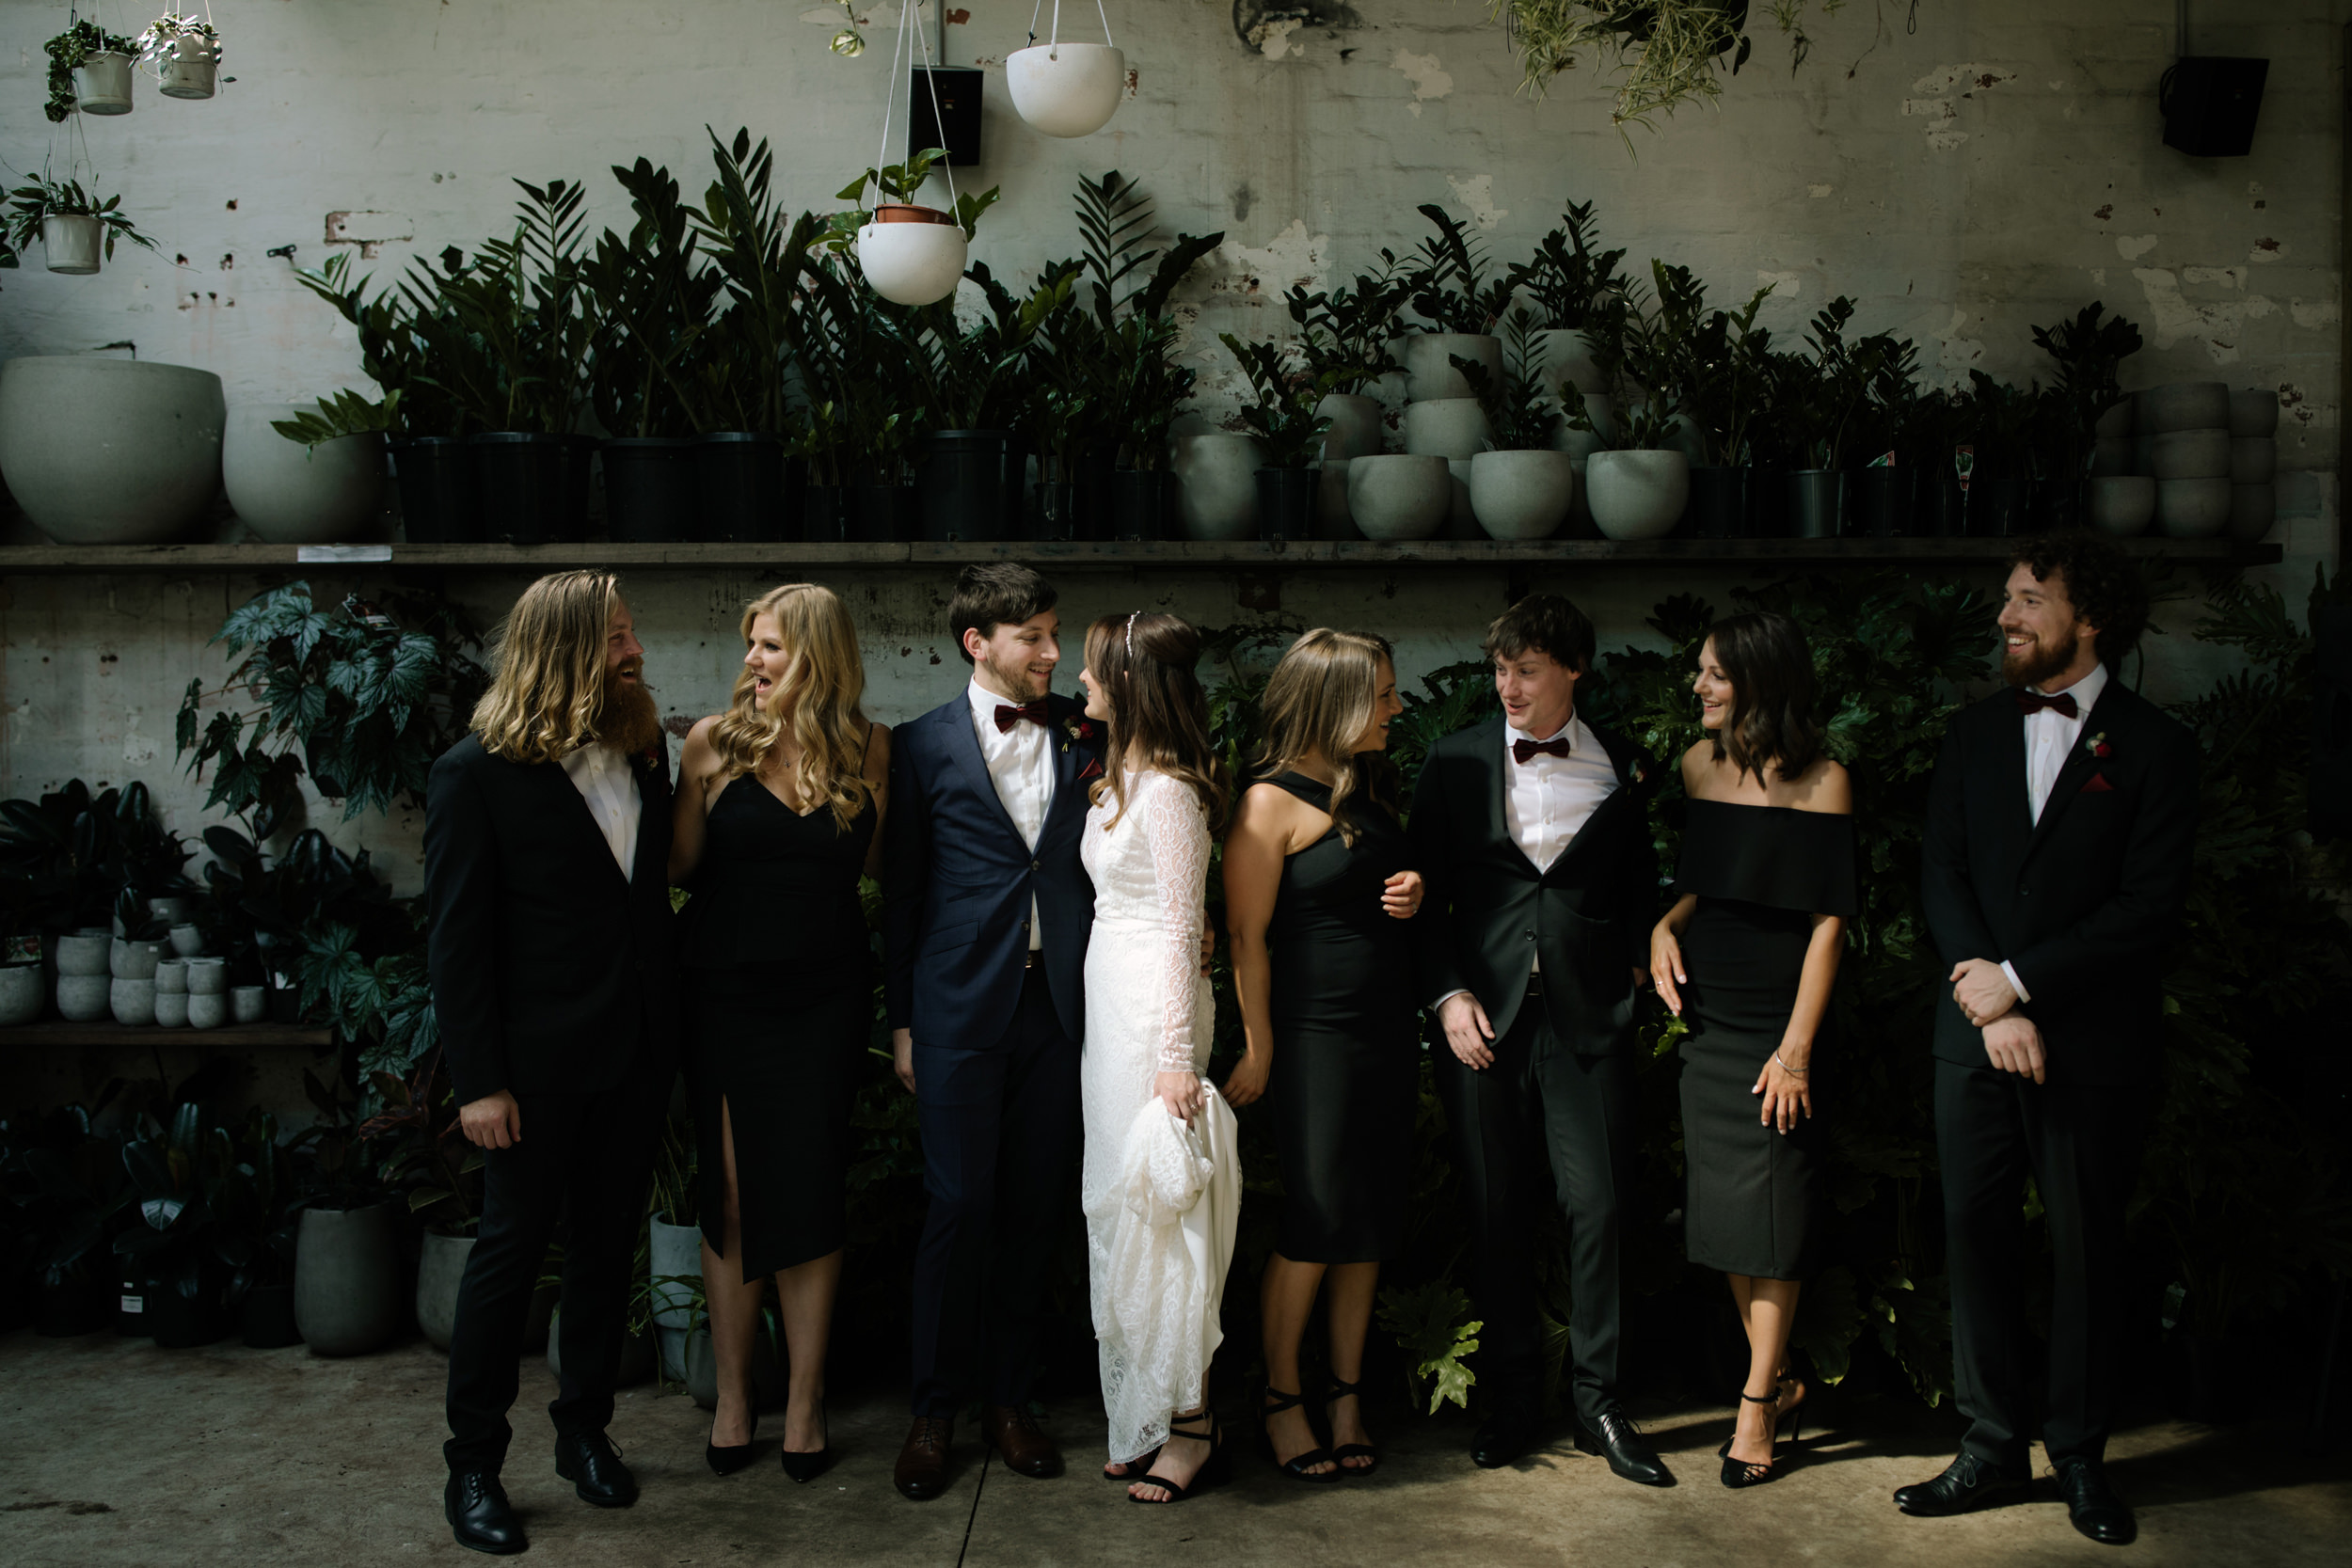 I_Got_You_Babe_Weddings_Emily_Matt_Rupert_Glasshaus_Melbourne0047.JPG